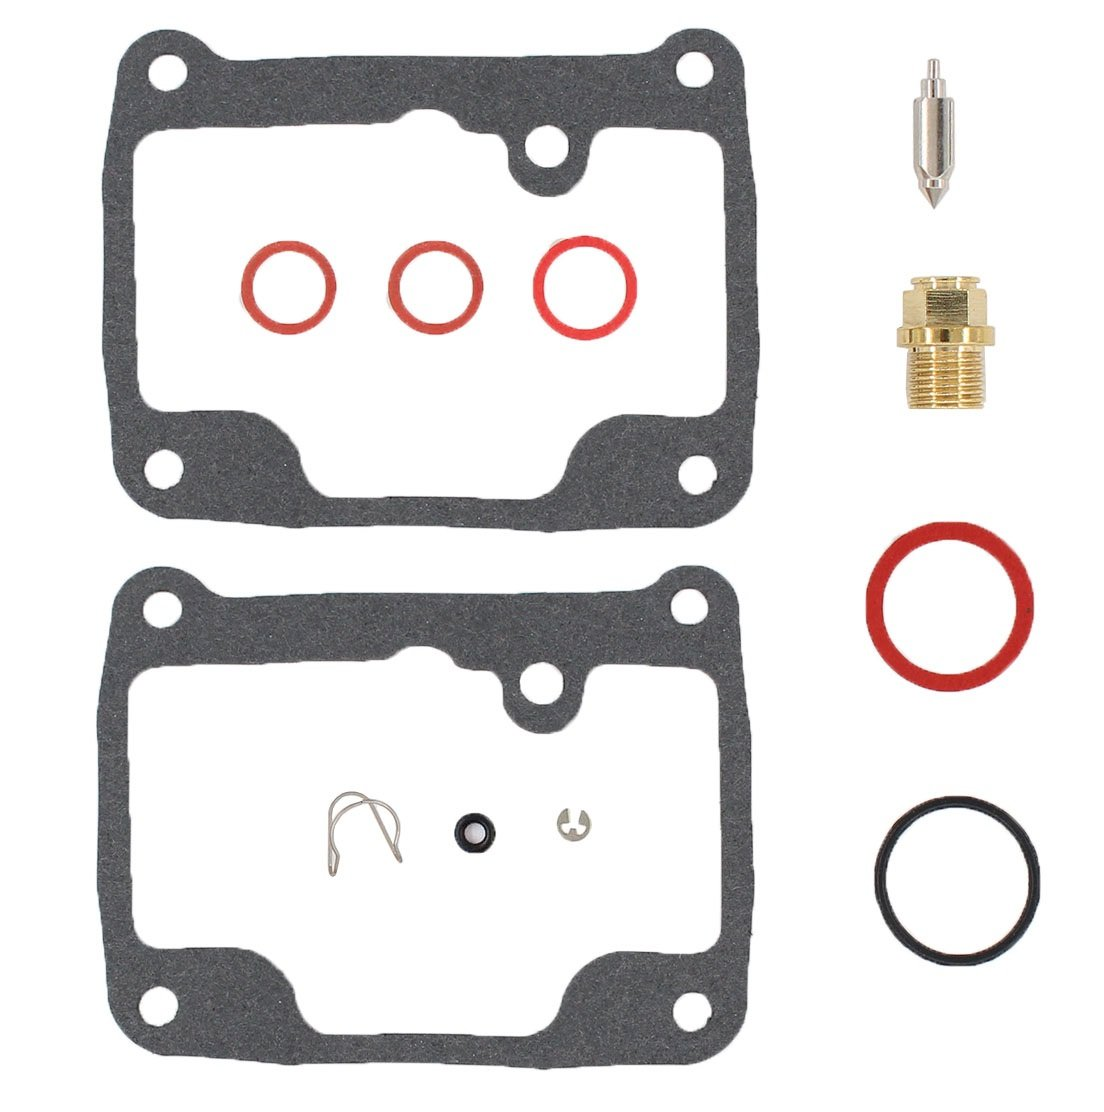 Quality Carburetor Carb Rebuild Repair Kit for the 2007-2009 Yamaha YFM 350 Grizzly IRS 4WD FG FGI ATVs